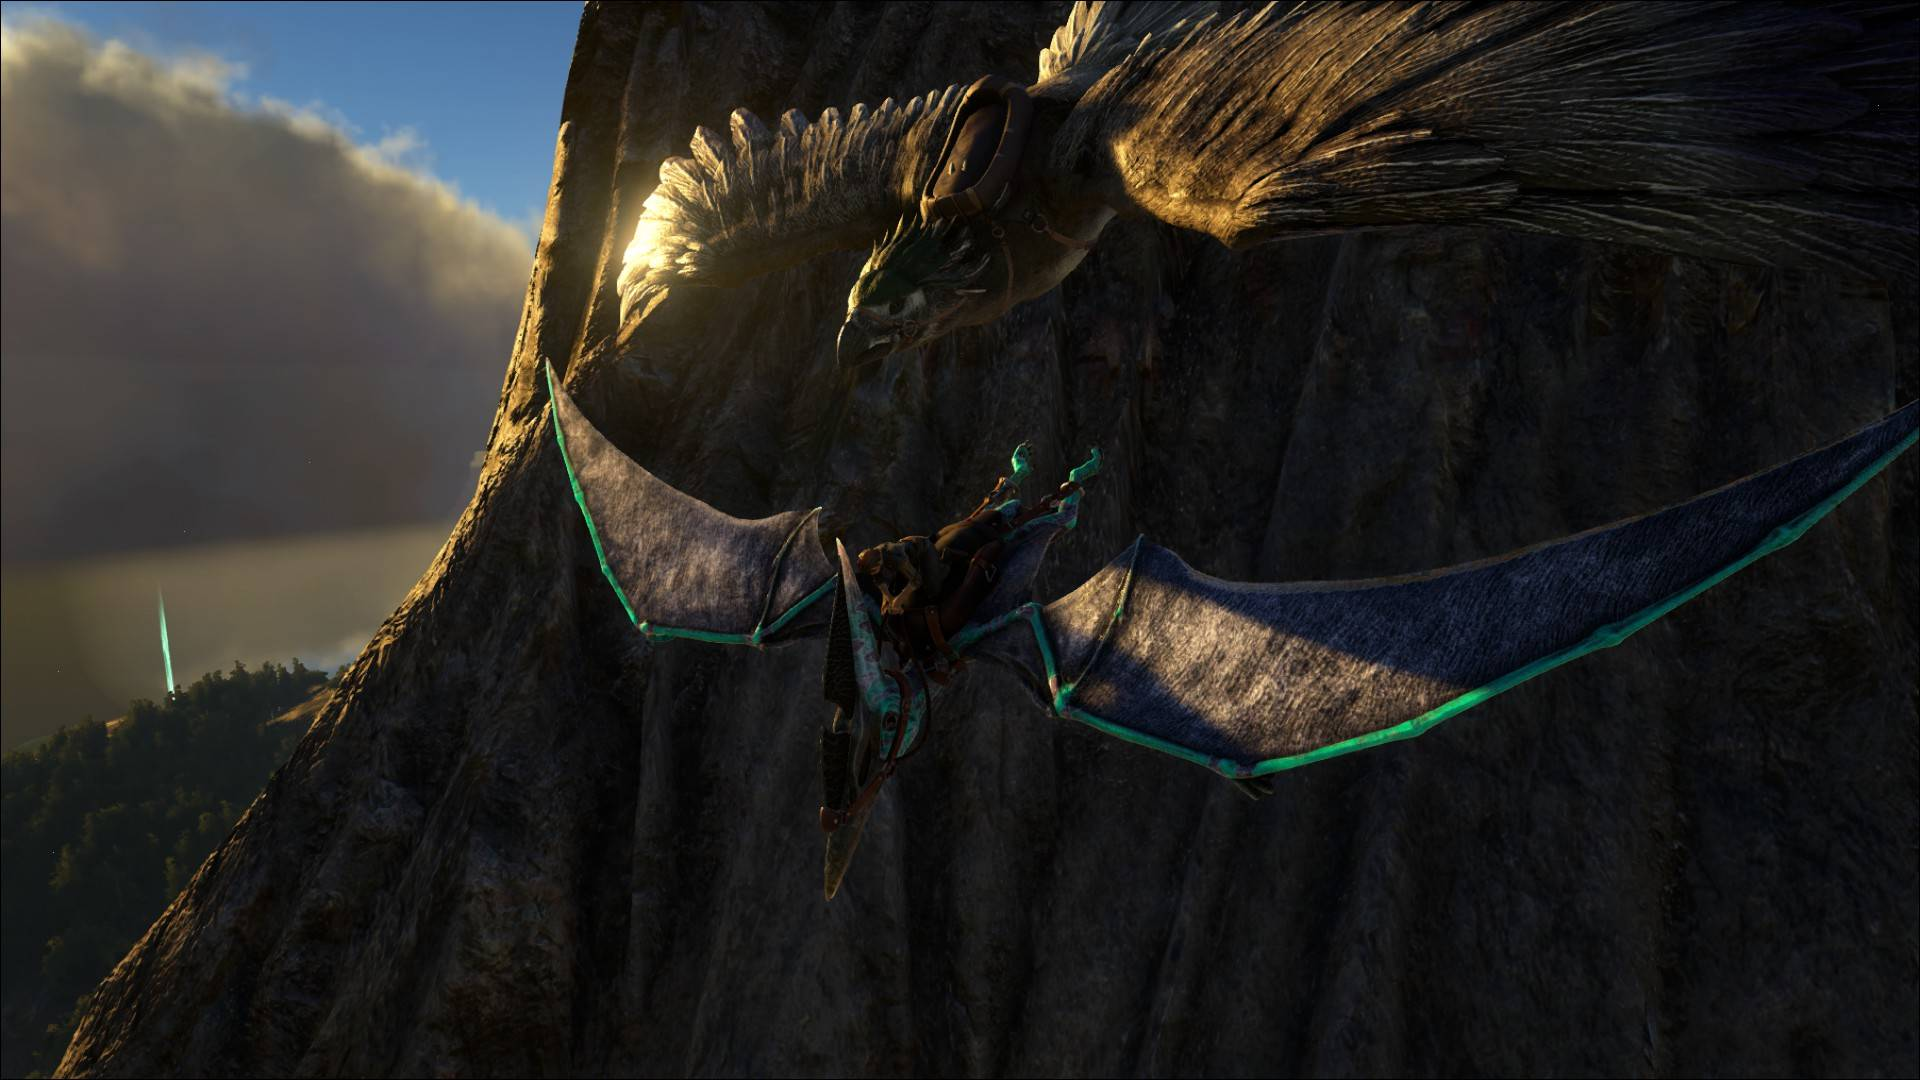 Pteranodon being chased.